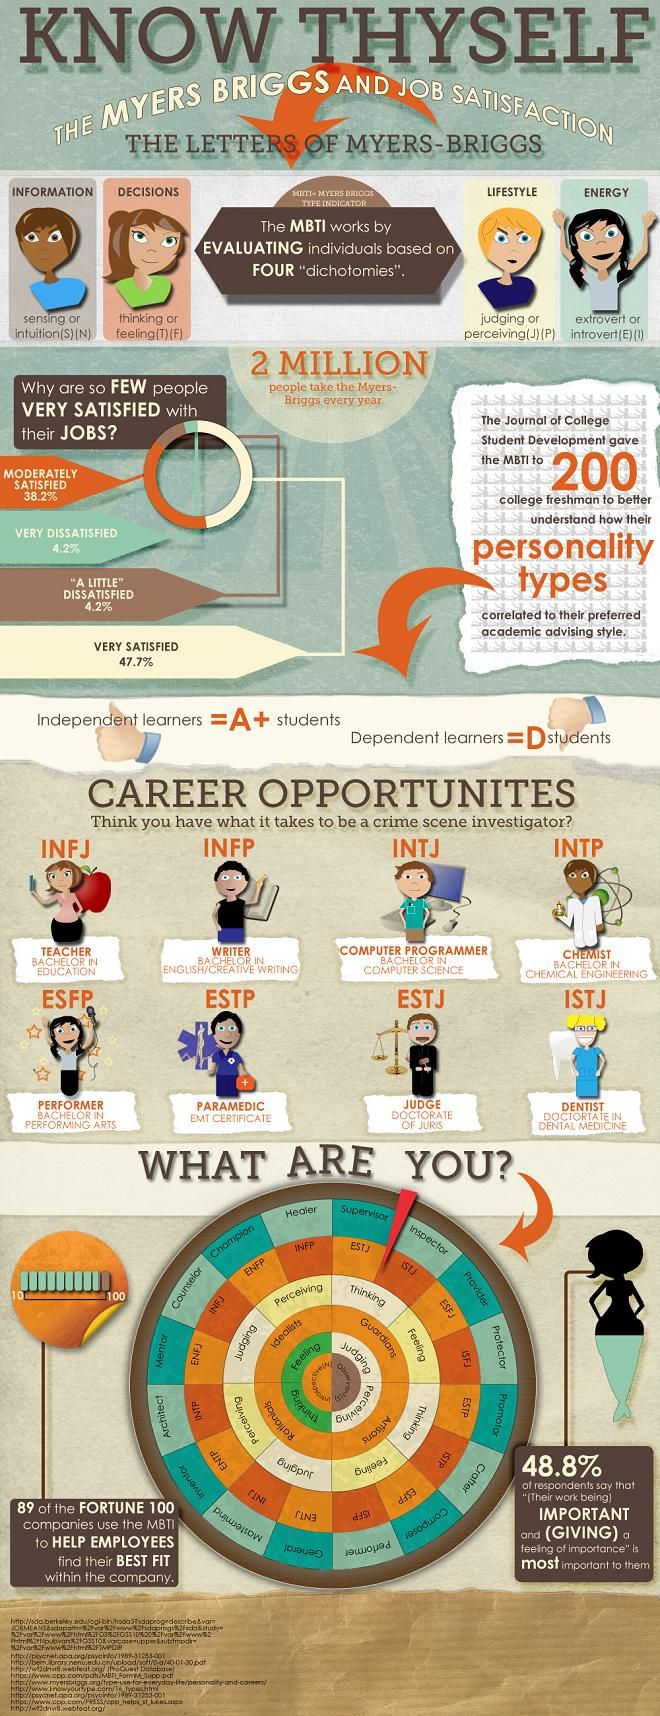 Are you thinking about potential career paths or majors? Have you been to Career Services for an assessment? INFOGRAPHIC: Know Thyself: The Myers-Briggs and Job Satisfaction